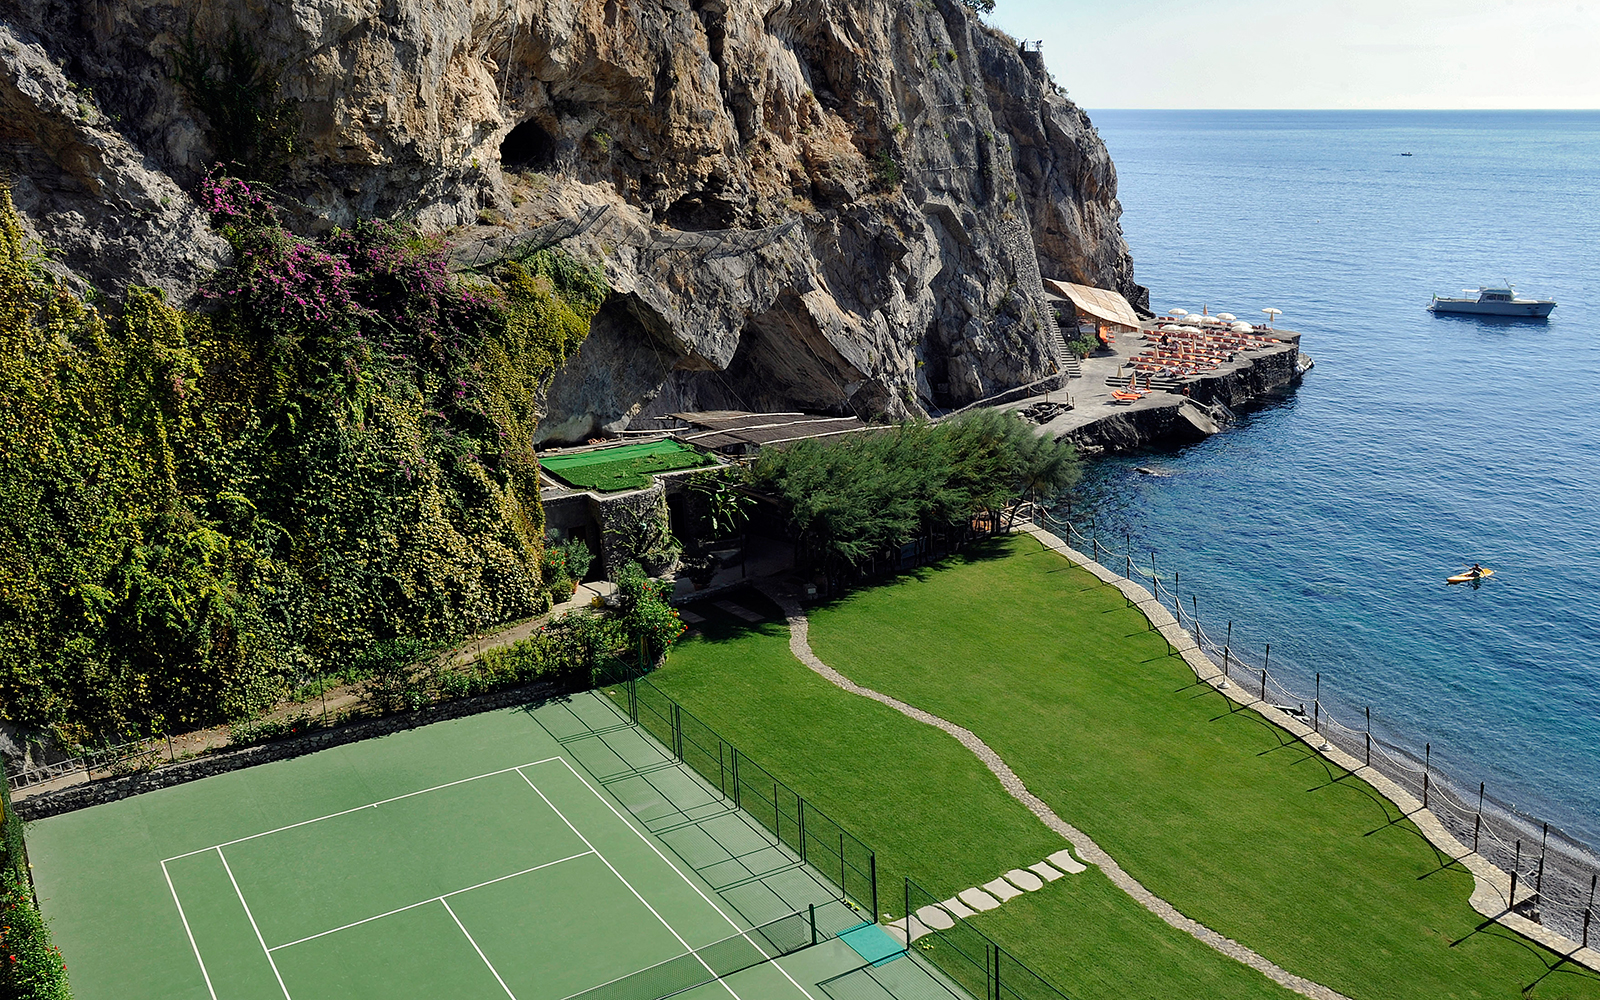 Is This the World's Most Beautiful Hotel Tennis Court?